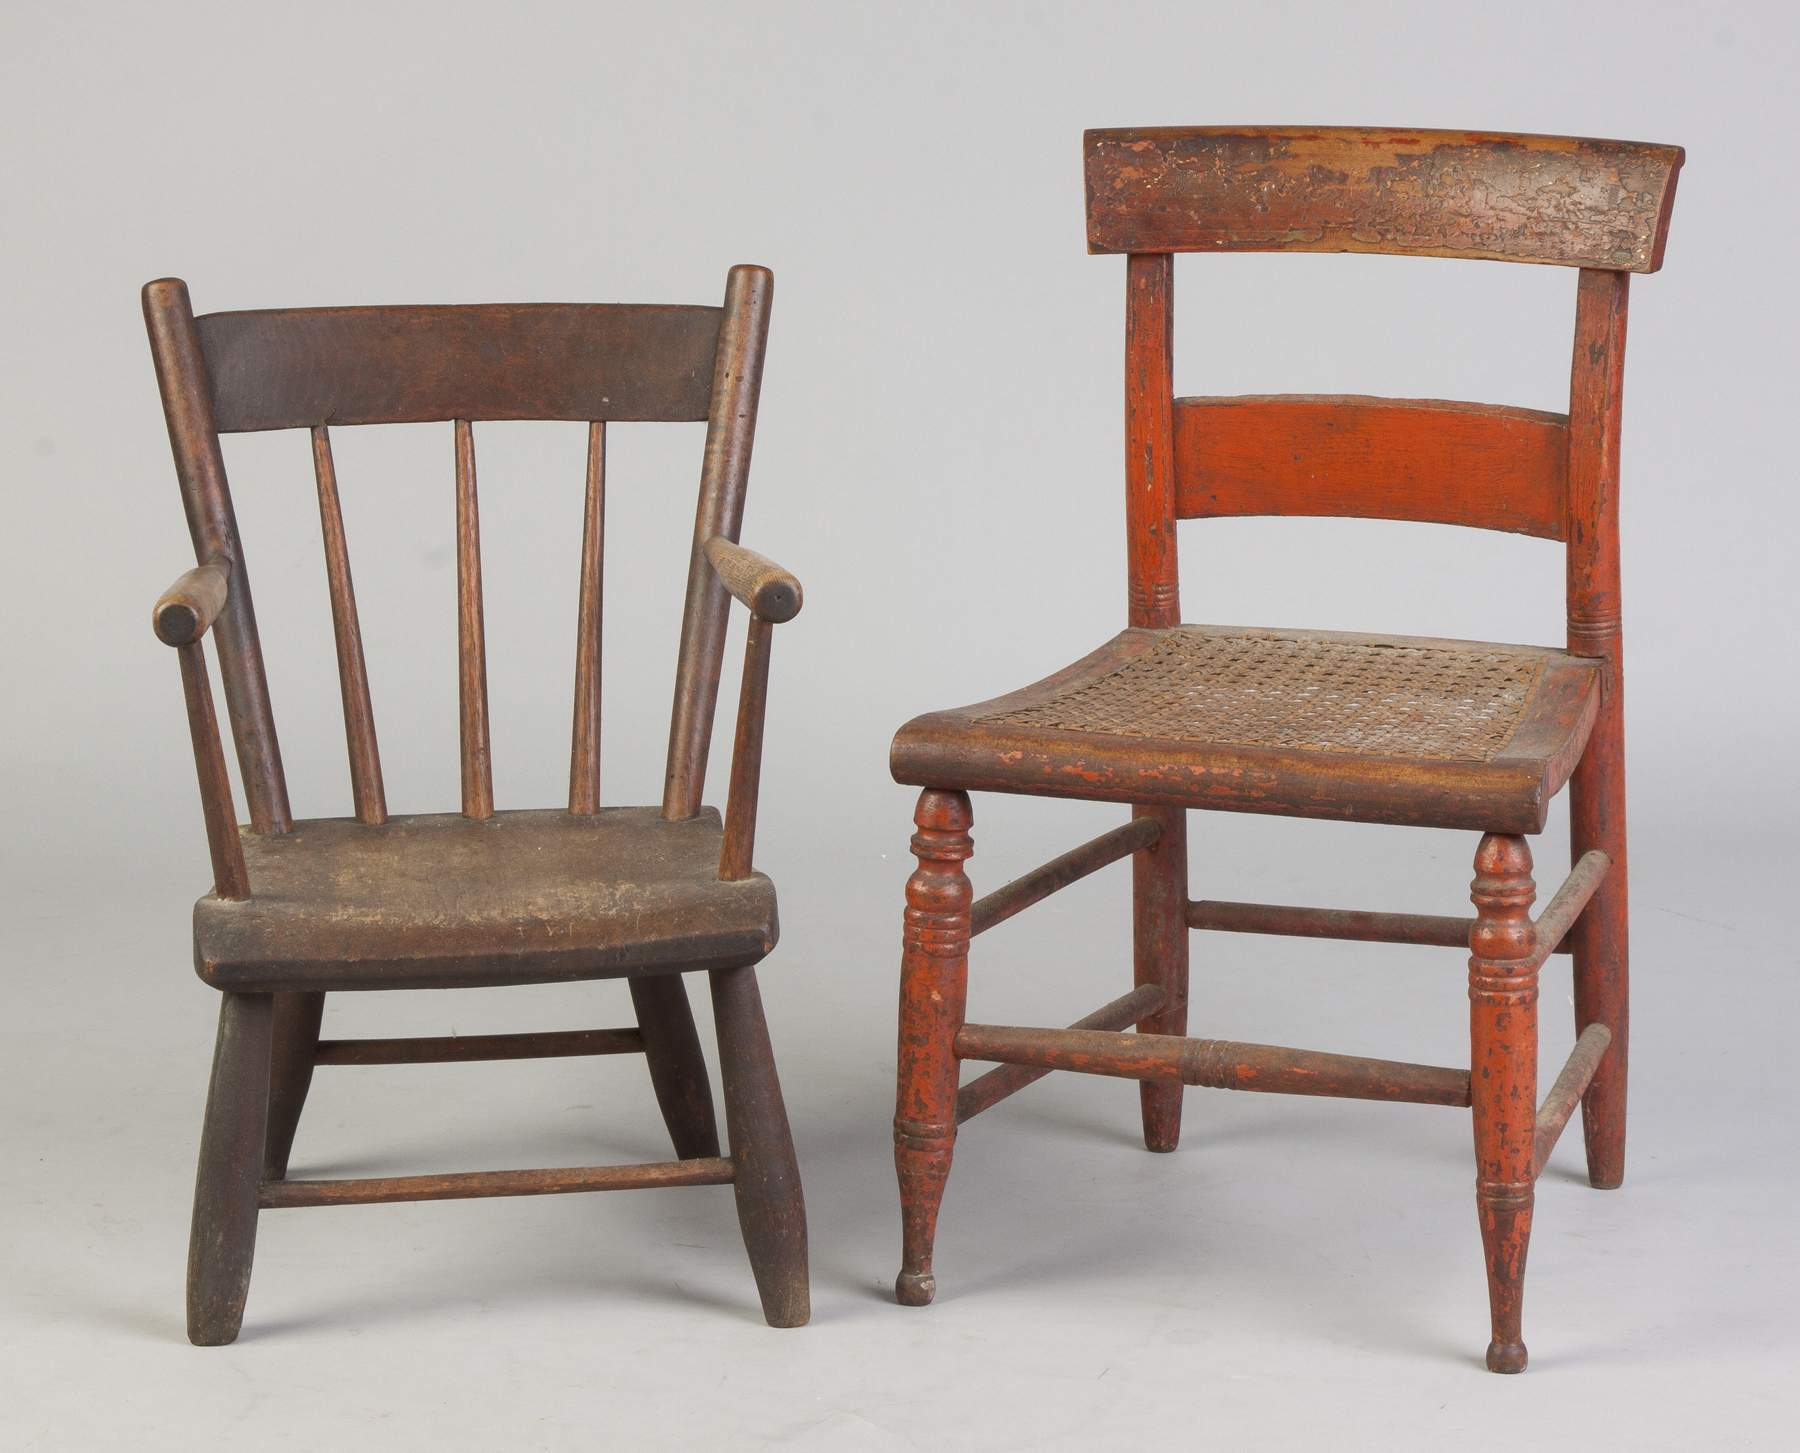 Two Youth Chairs